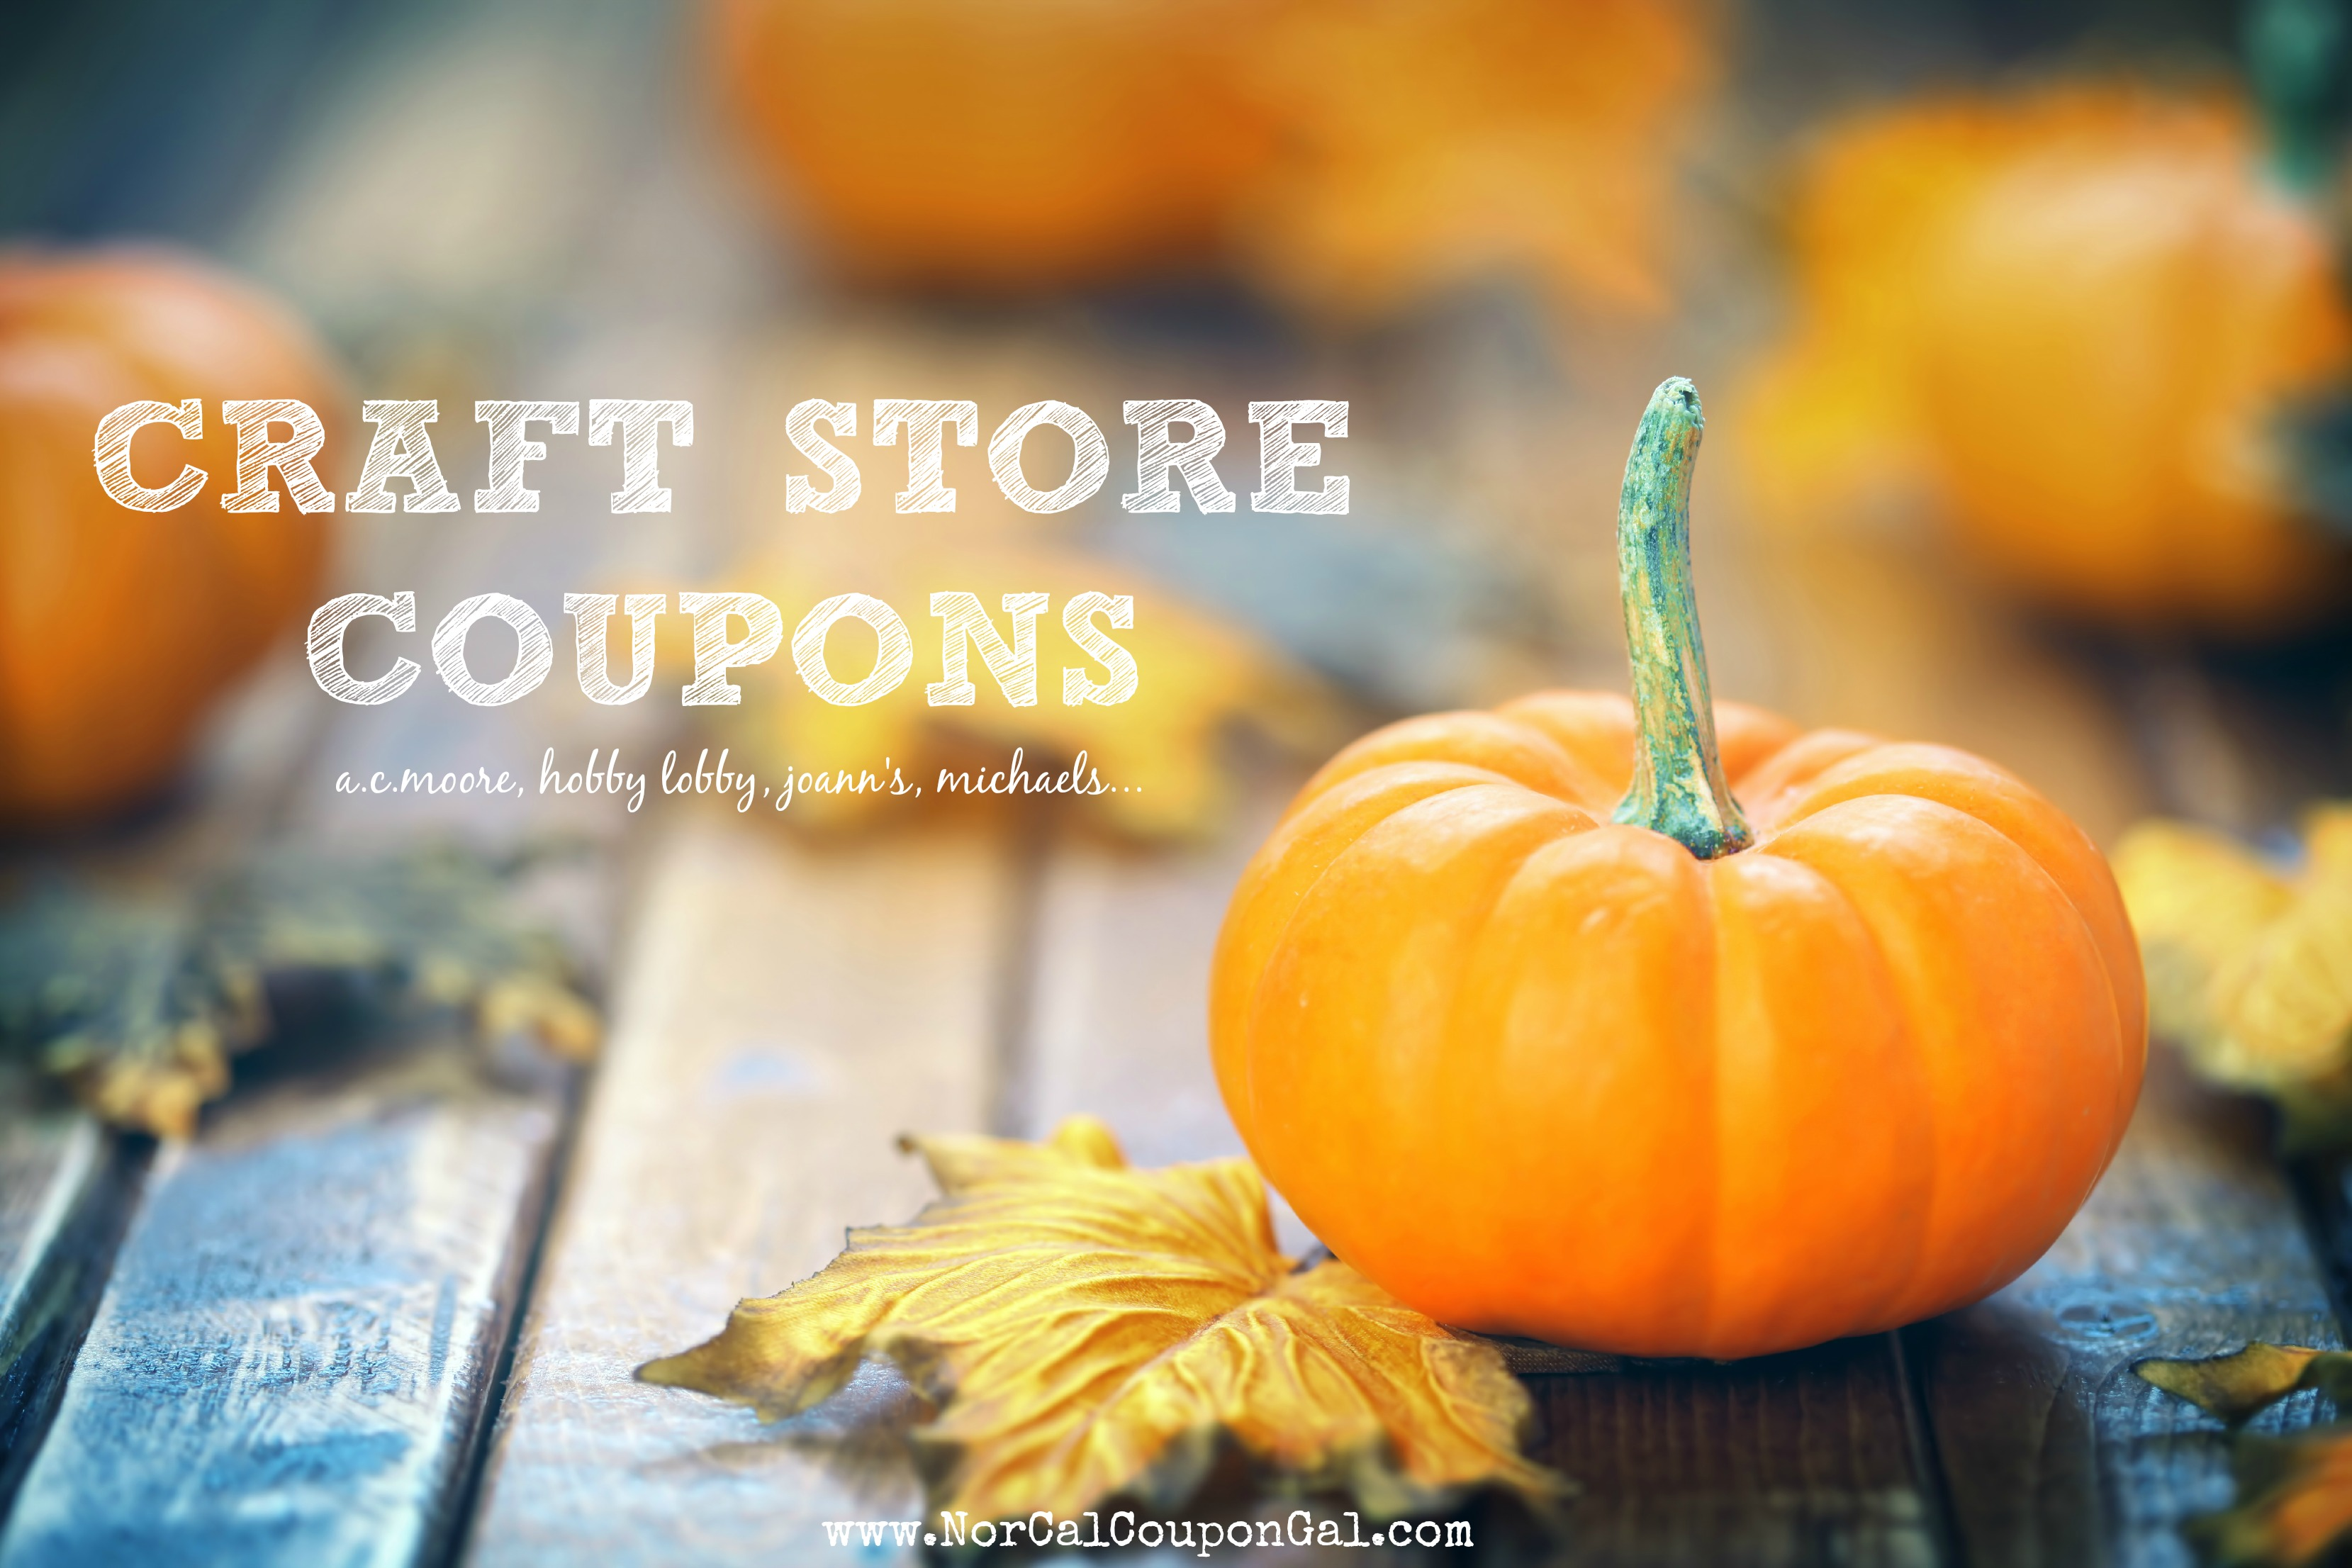 Craft Store Coupons - Fall